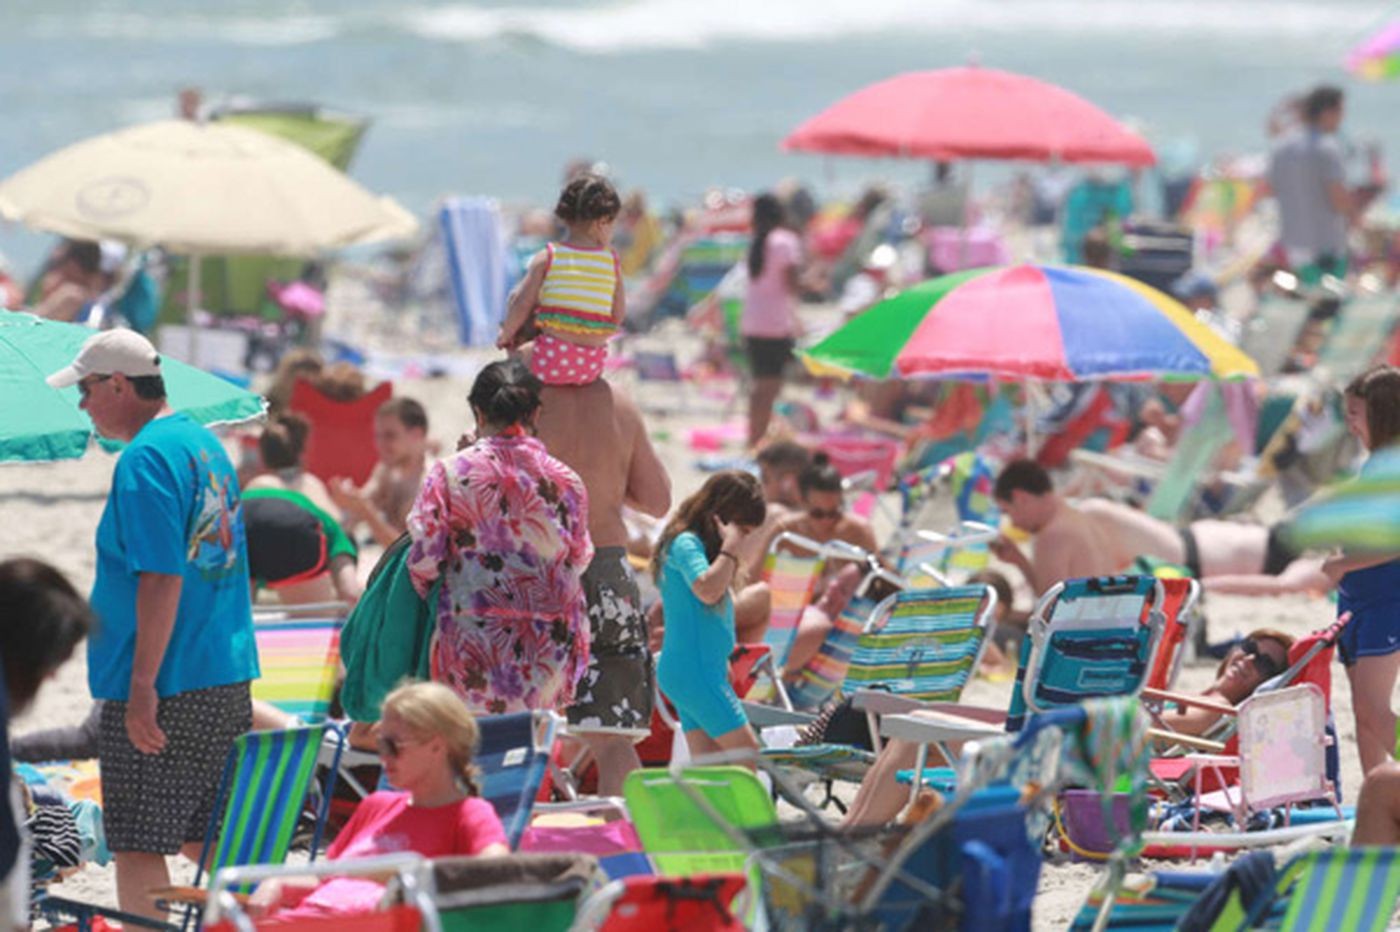 At the Jersey Shore, is social distancing even possible? With summer season in view, the question looms heavily.